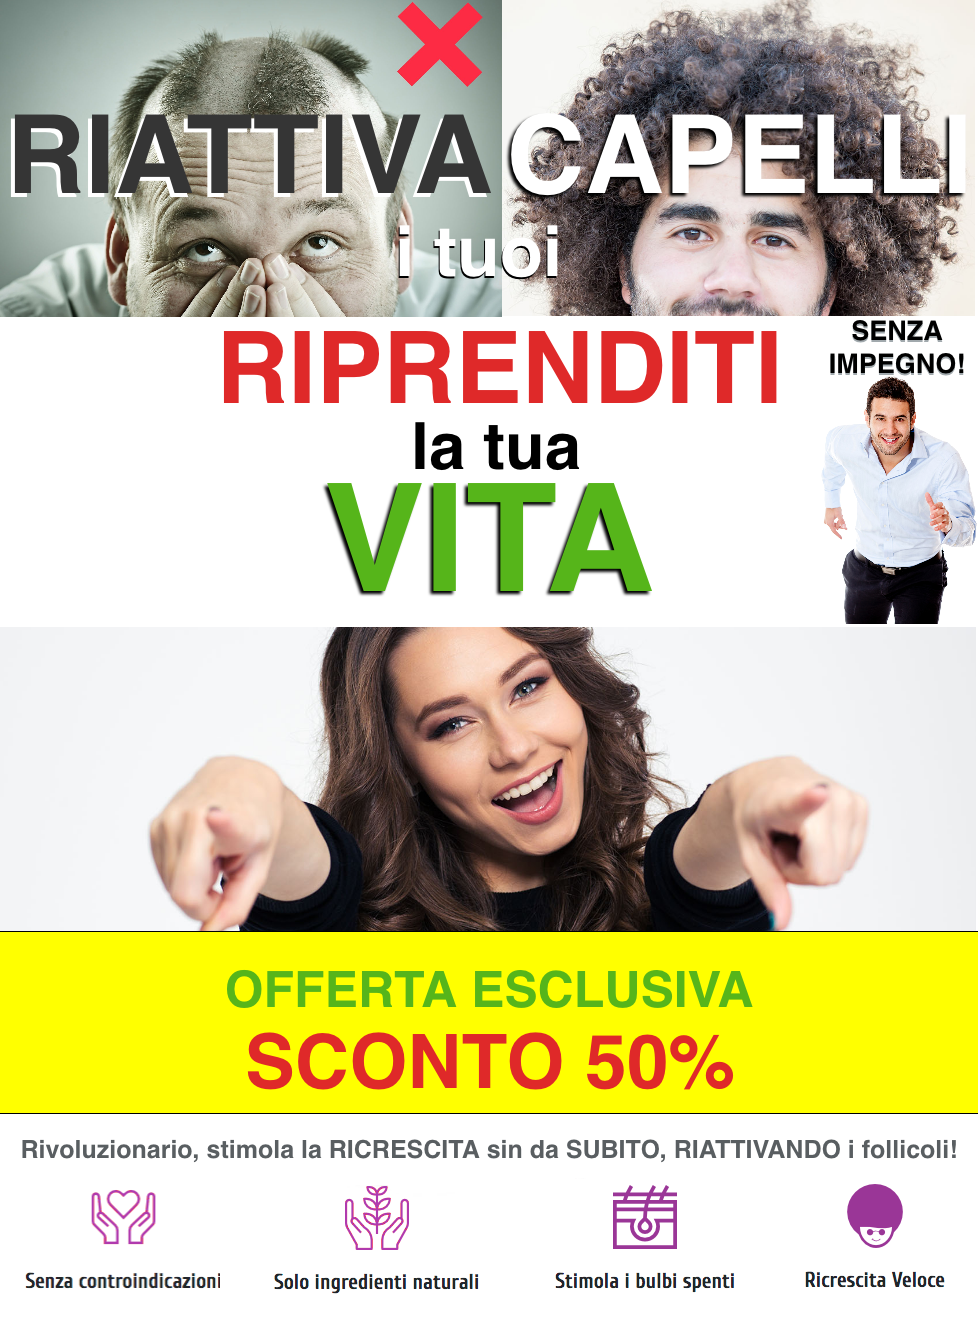 <B>RIATTIVA I TUOI CAPELLI</B> RIPRENDITI LA TUA VITA | <B>OFFERTA ESCLUSIVA SCONTO 50%</B> per uomo e donna (<I>REACTIVATE YOUR HAIR RETURN YOUR LIFE for men and woman</I>)